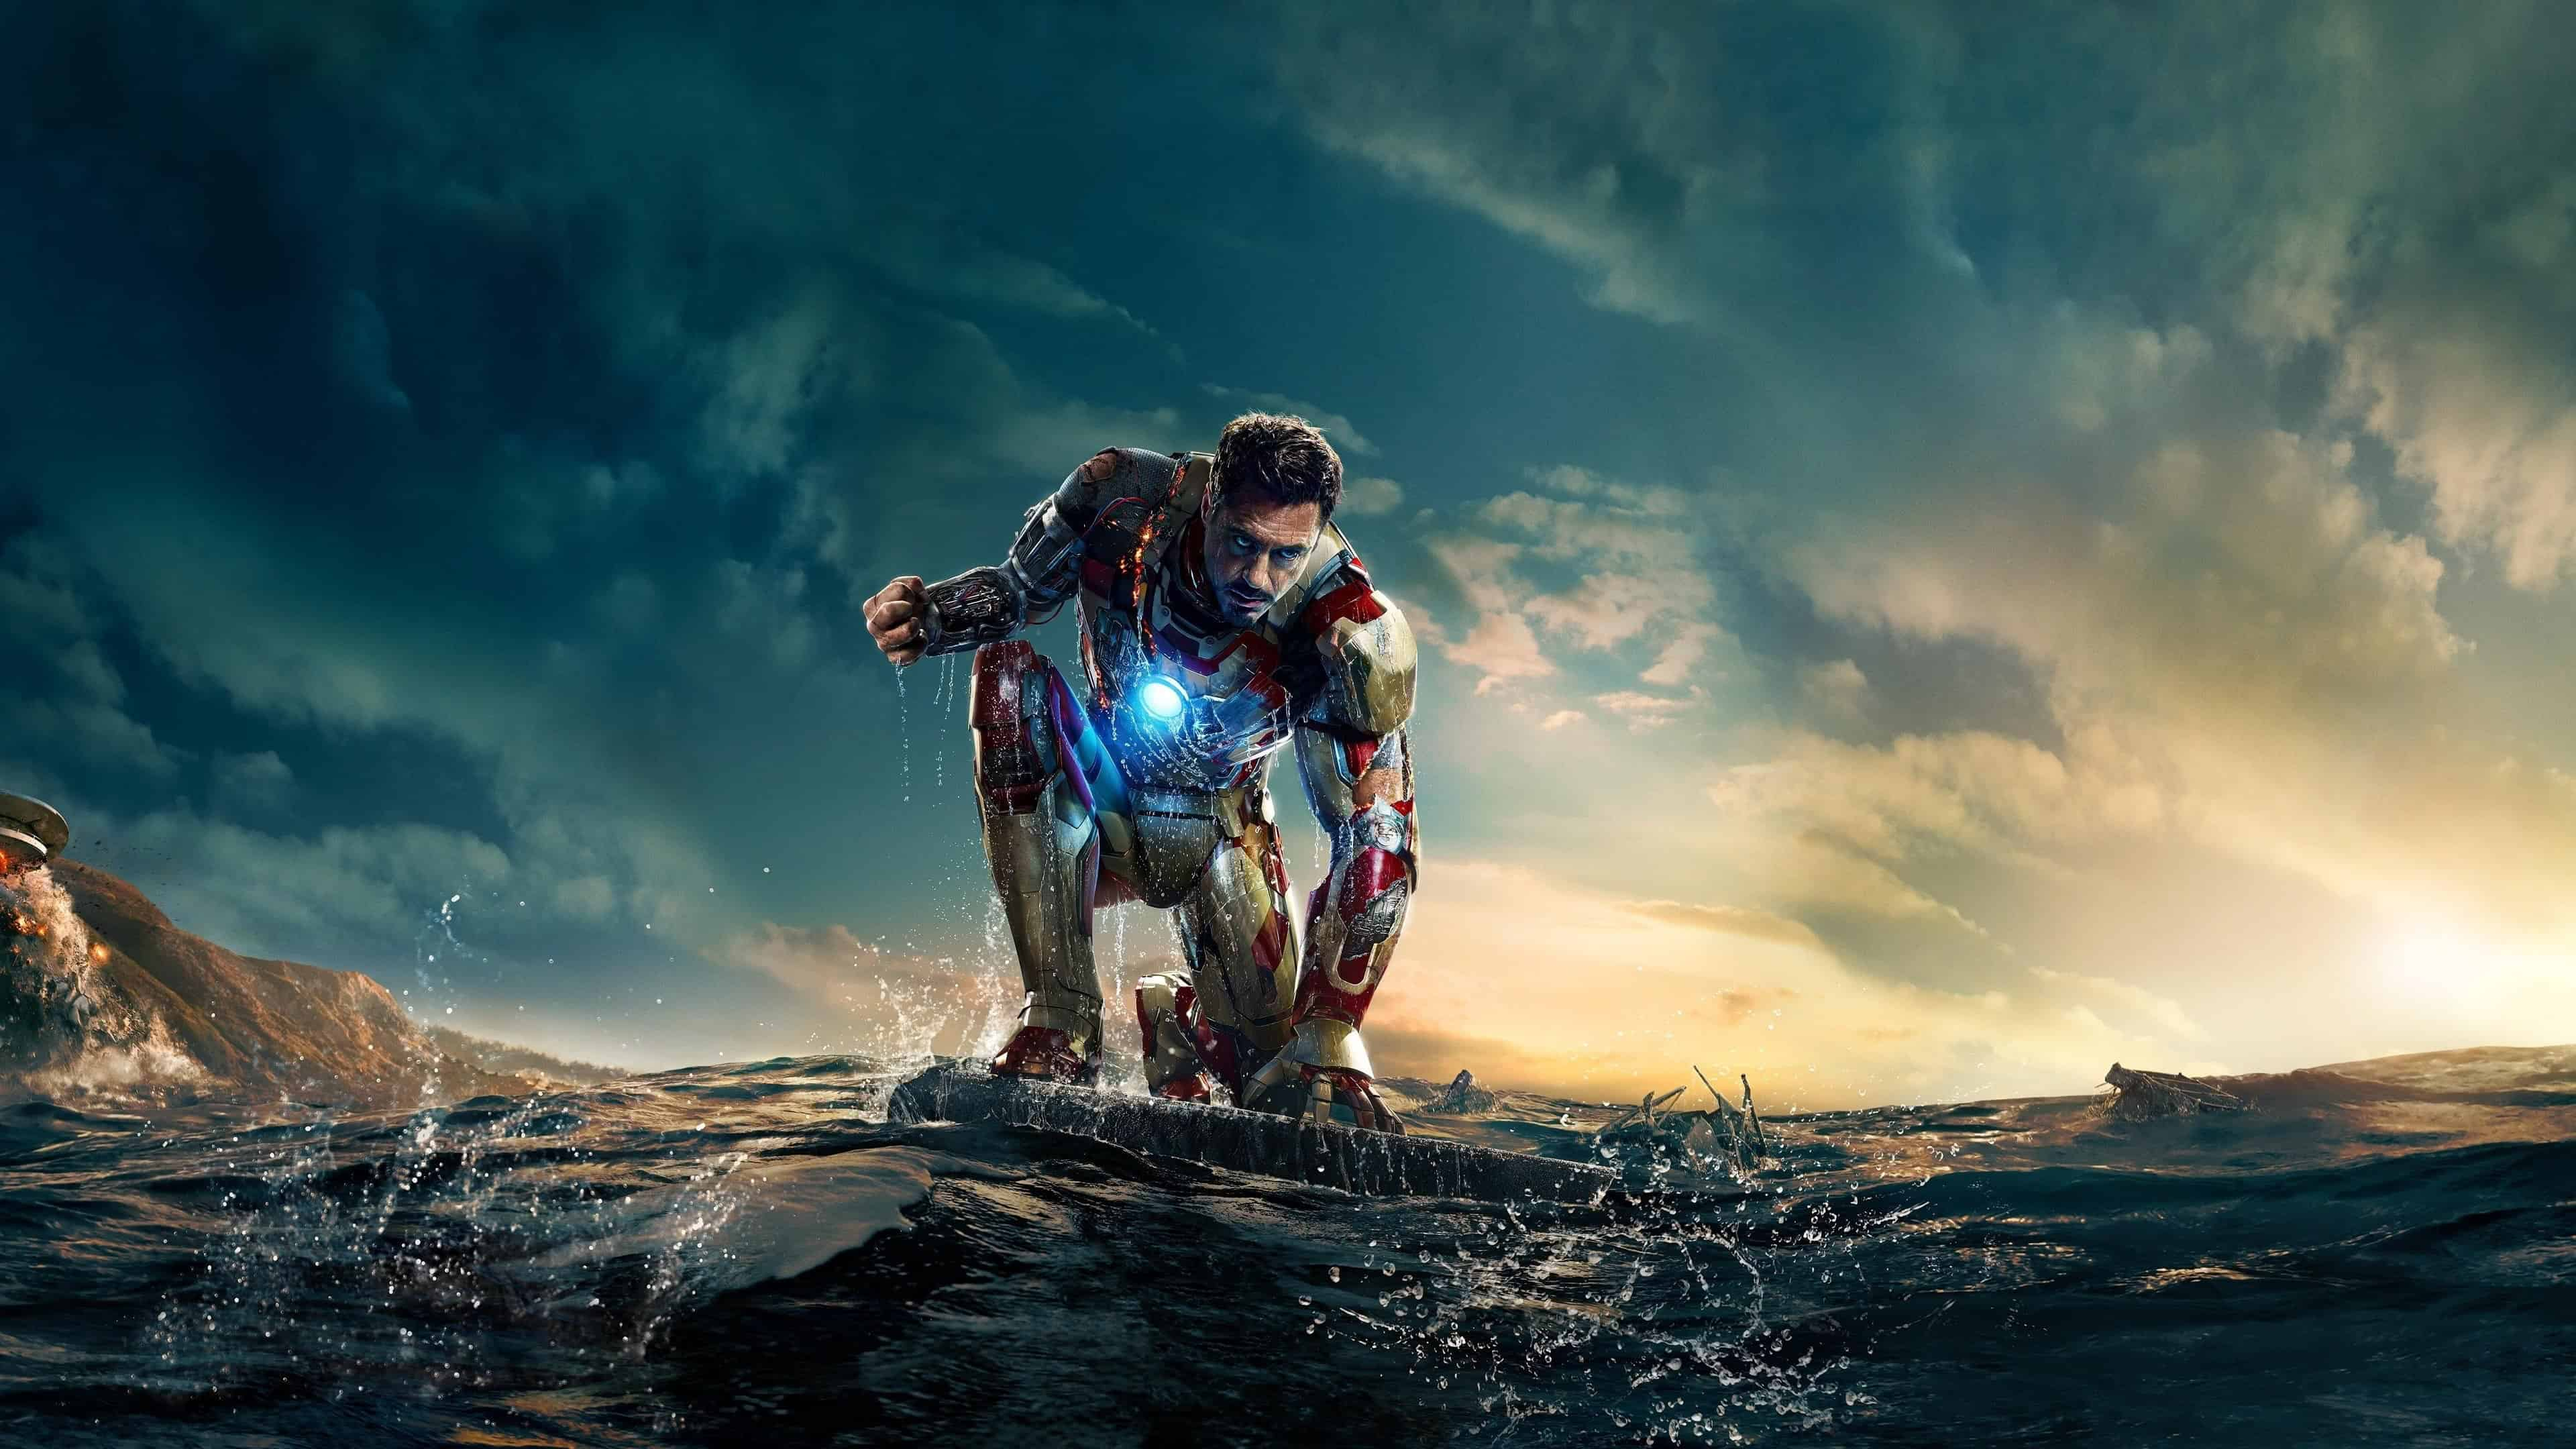 Keywords Iron Man DOWNLOAD IMAGE